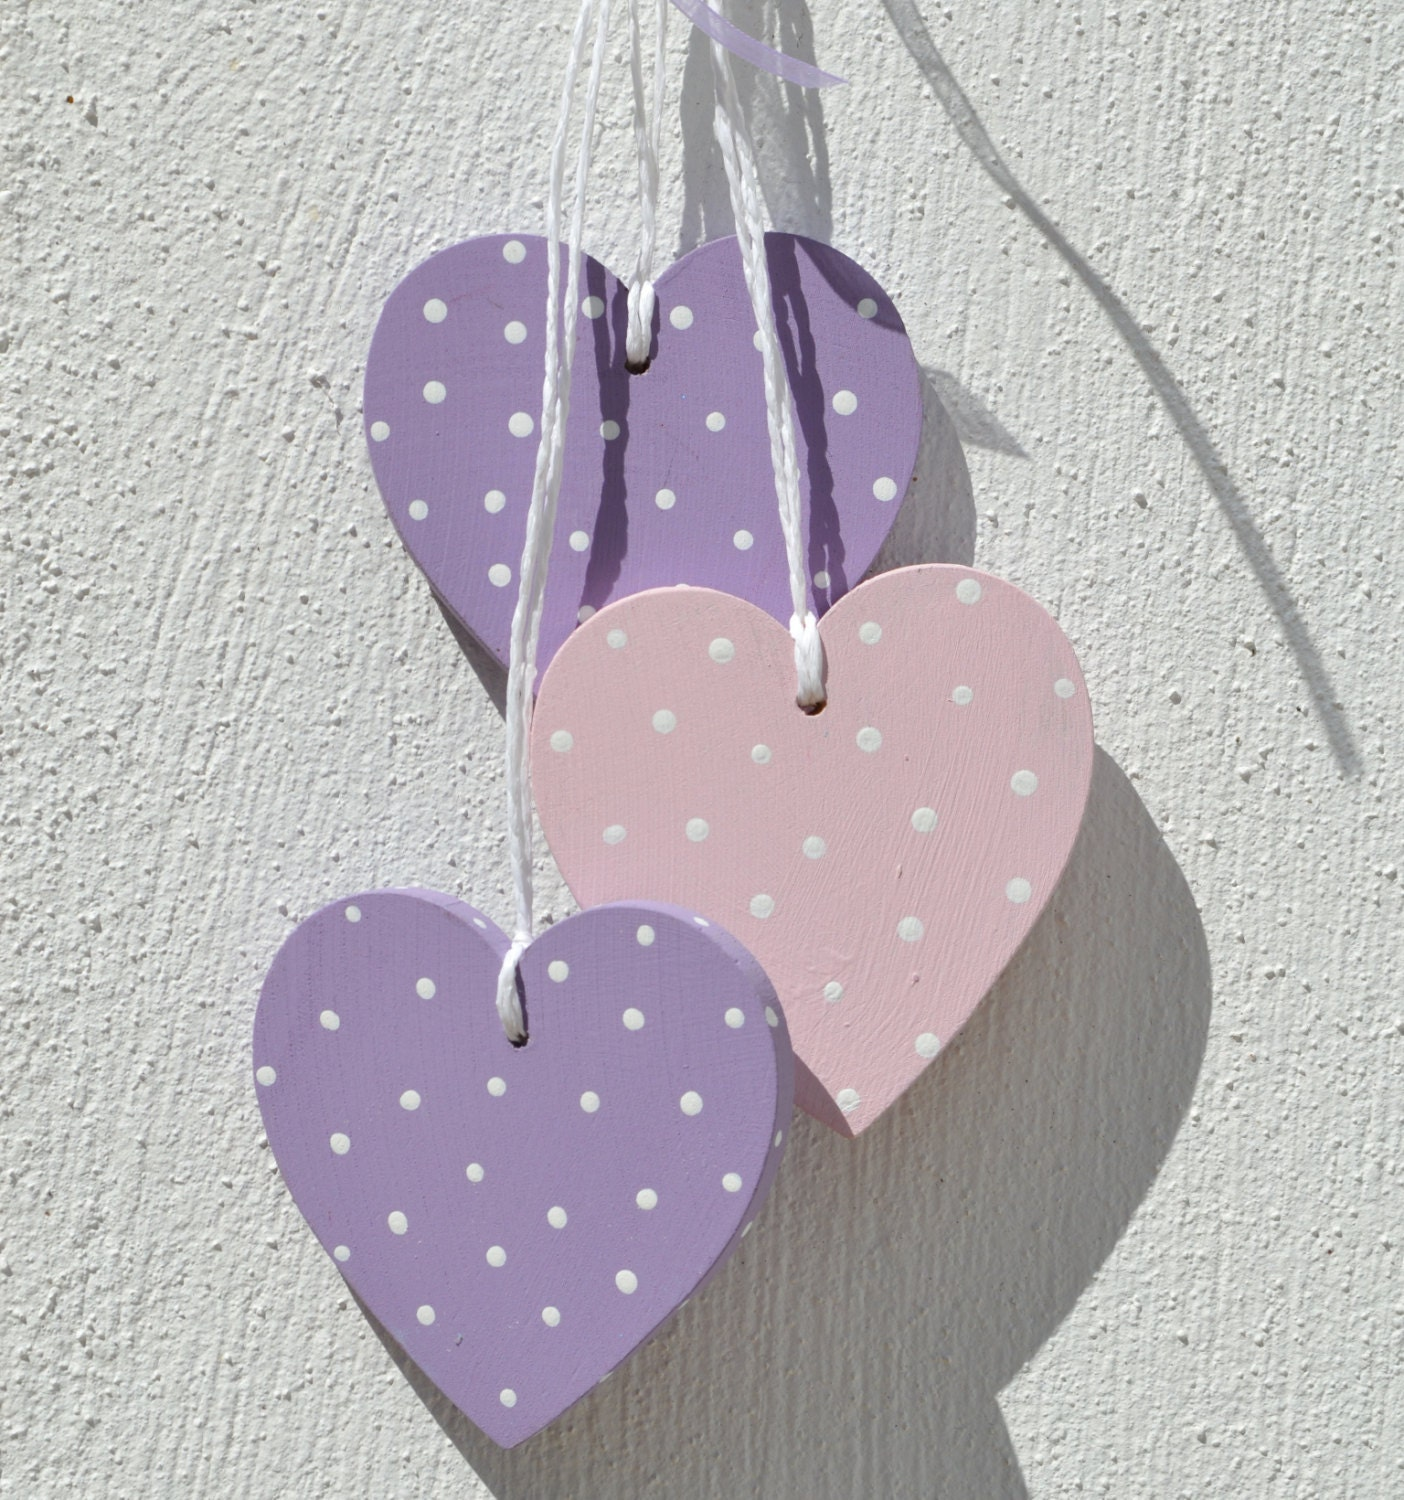 Hanging Heart Wall Decor : Sale home decor wall wooden hearts hanging